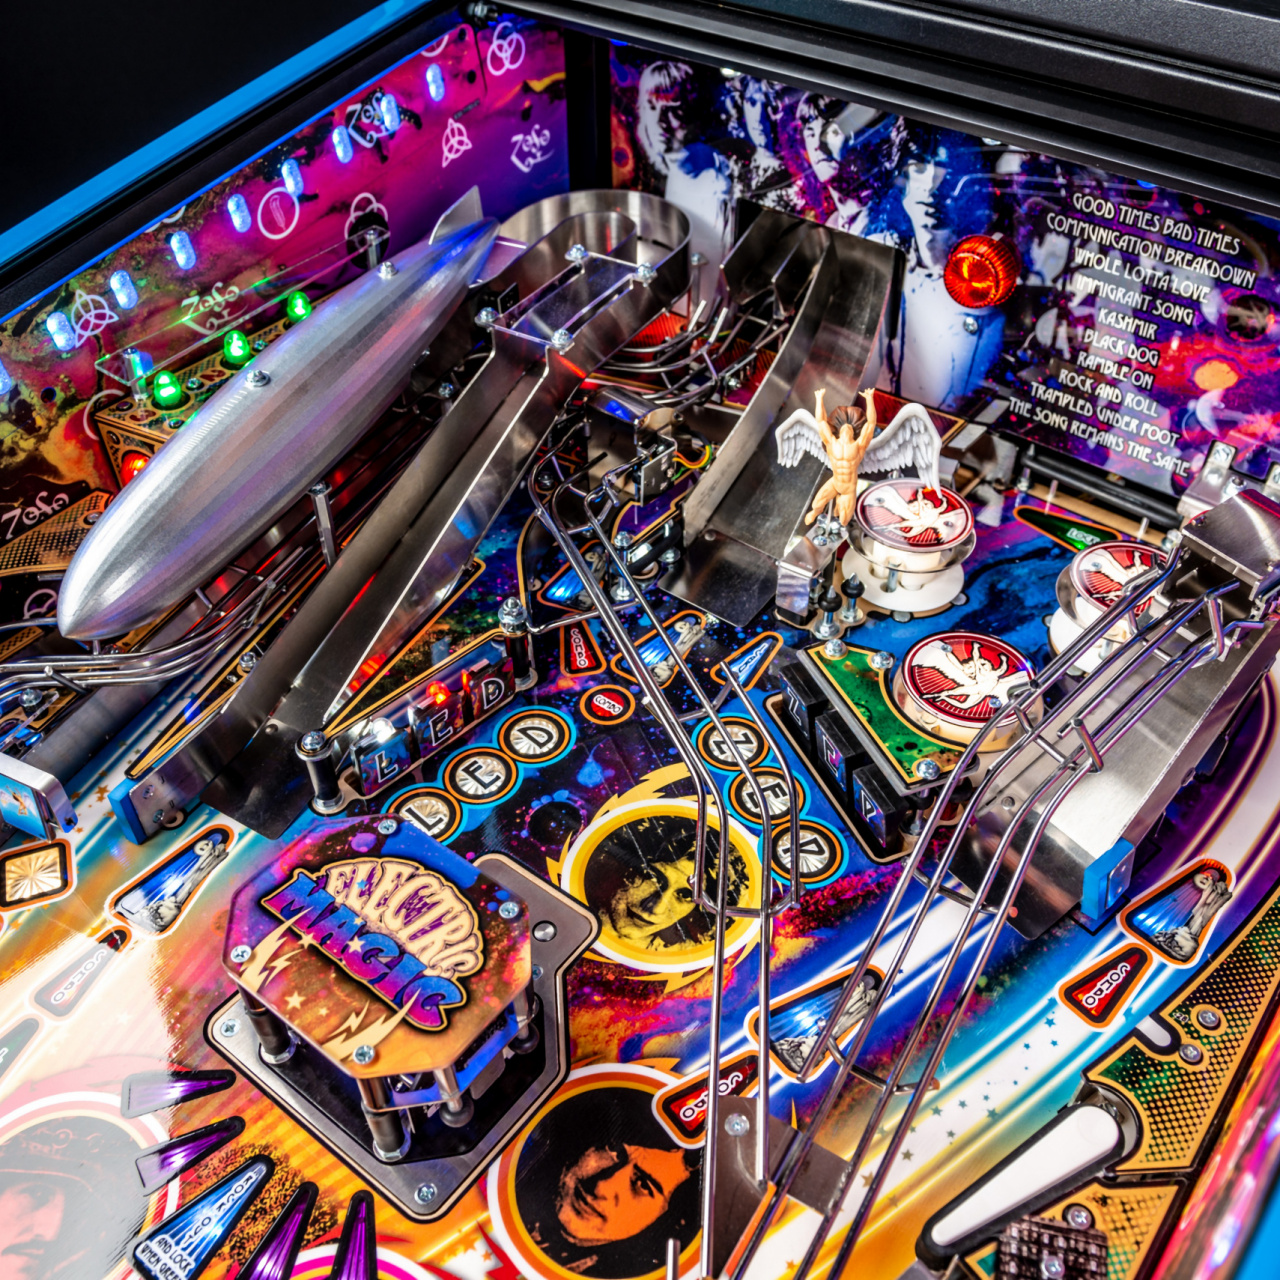 Led Zeppelin and Stern Pinball Announce New Rock and Roll Pinball Machines